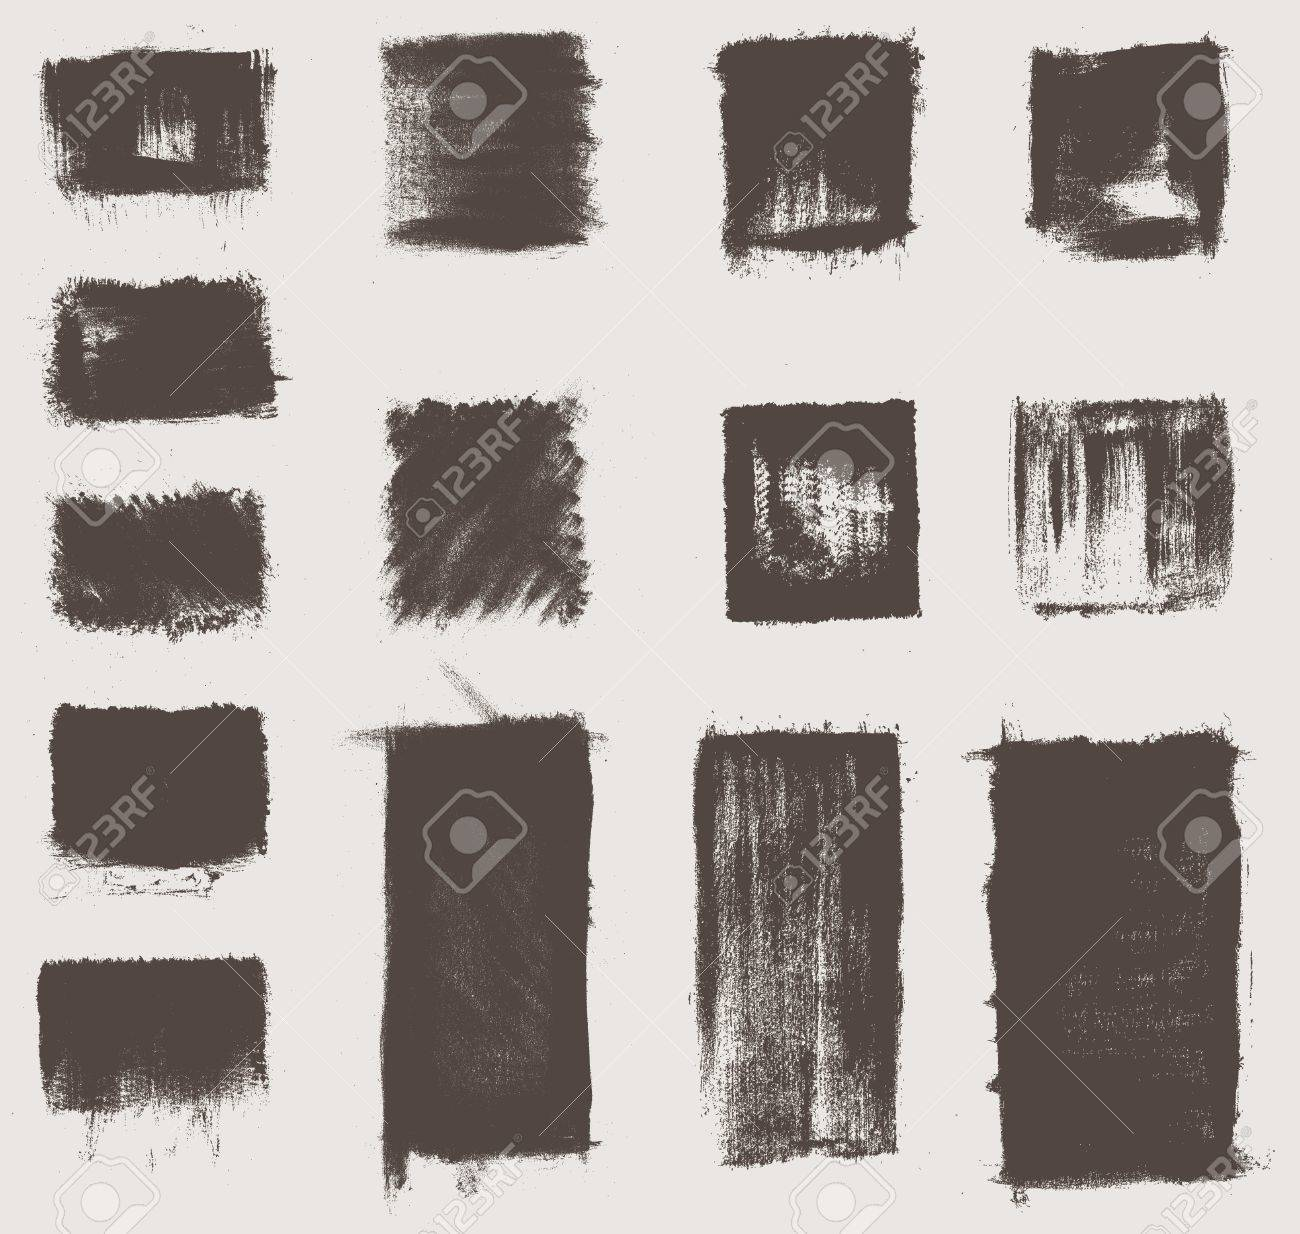 grunge vector textures brushes Stock Vector - 20110043